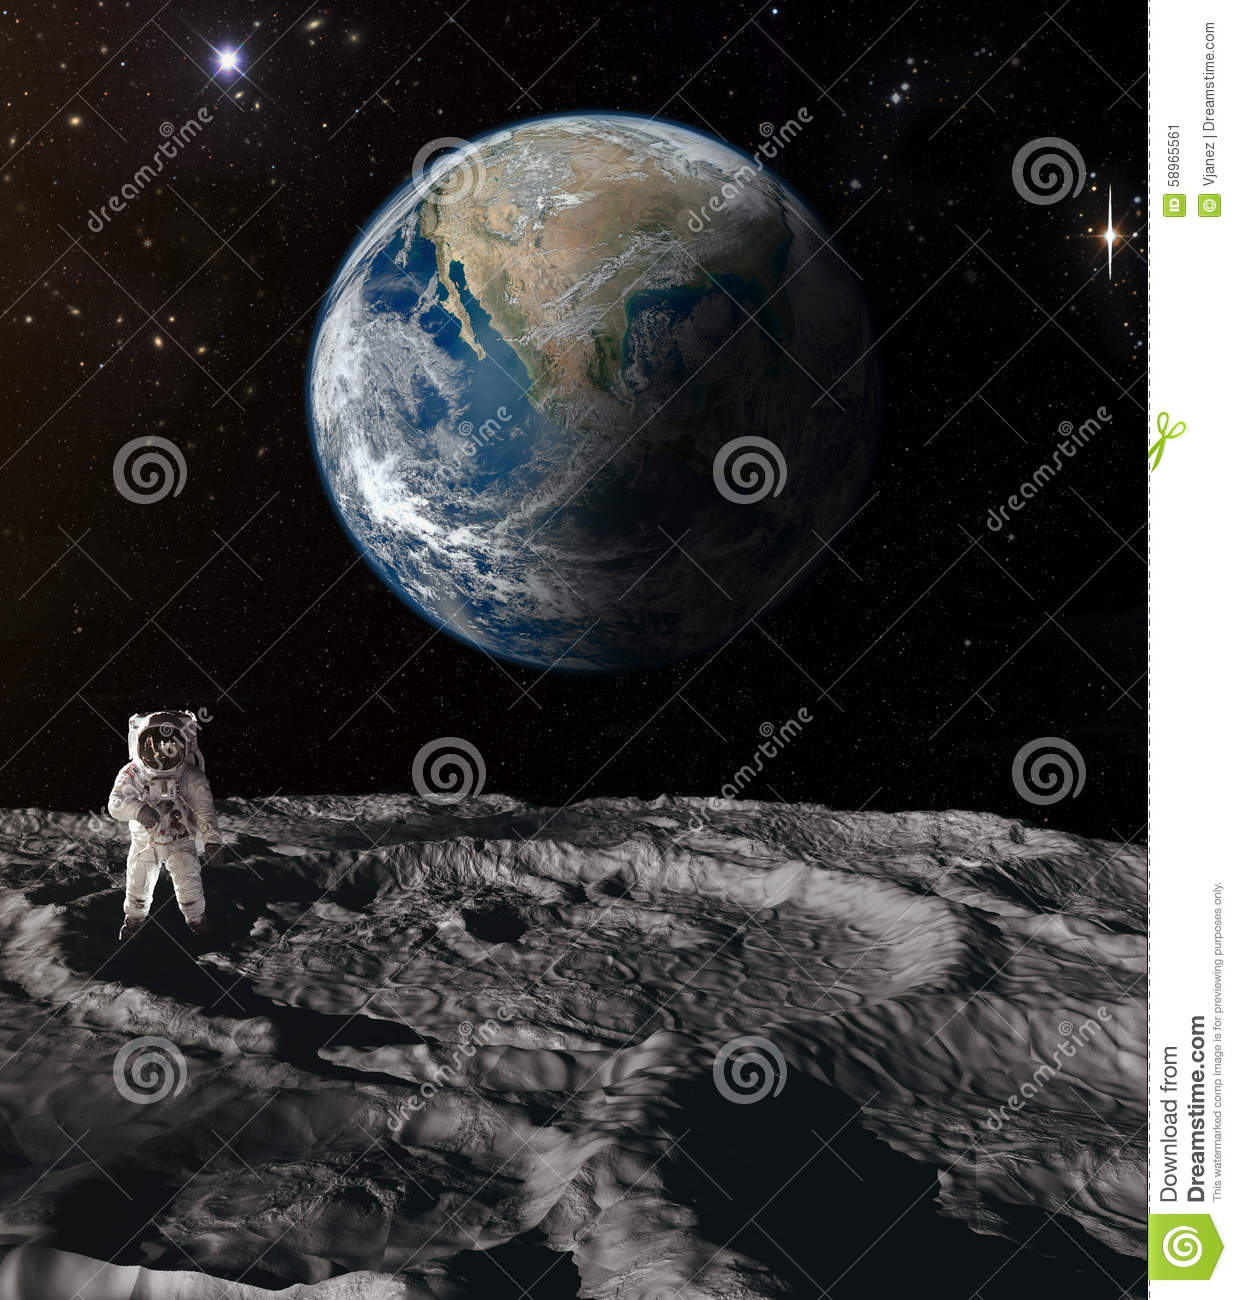 astronaut on moon earth background - photo #12